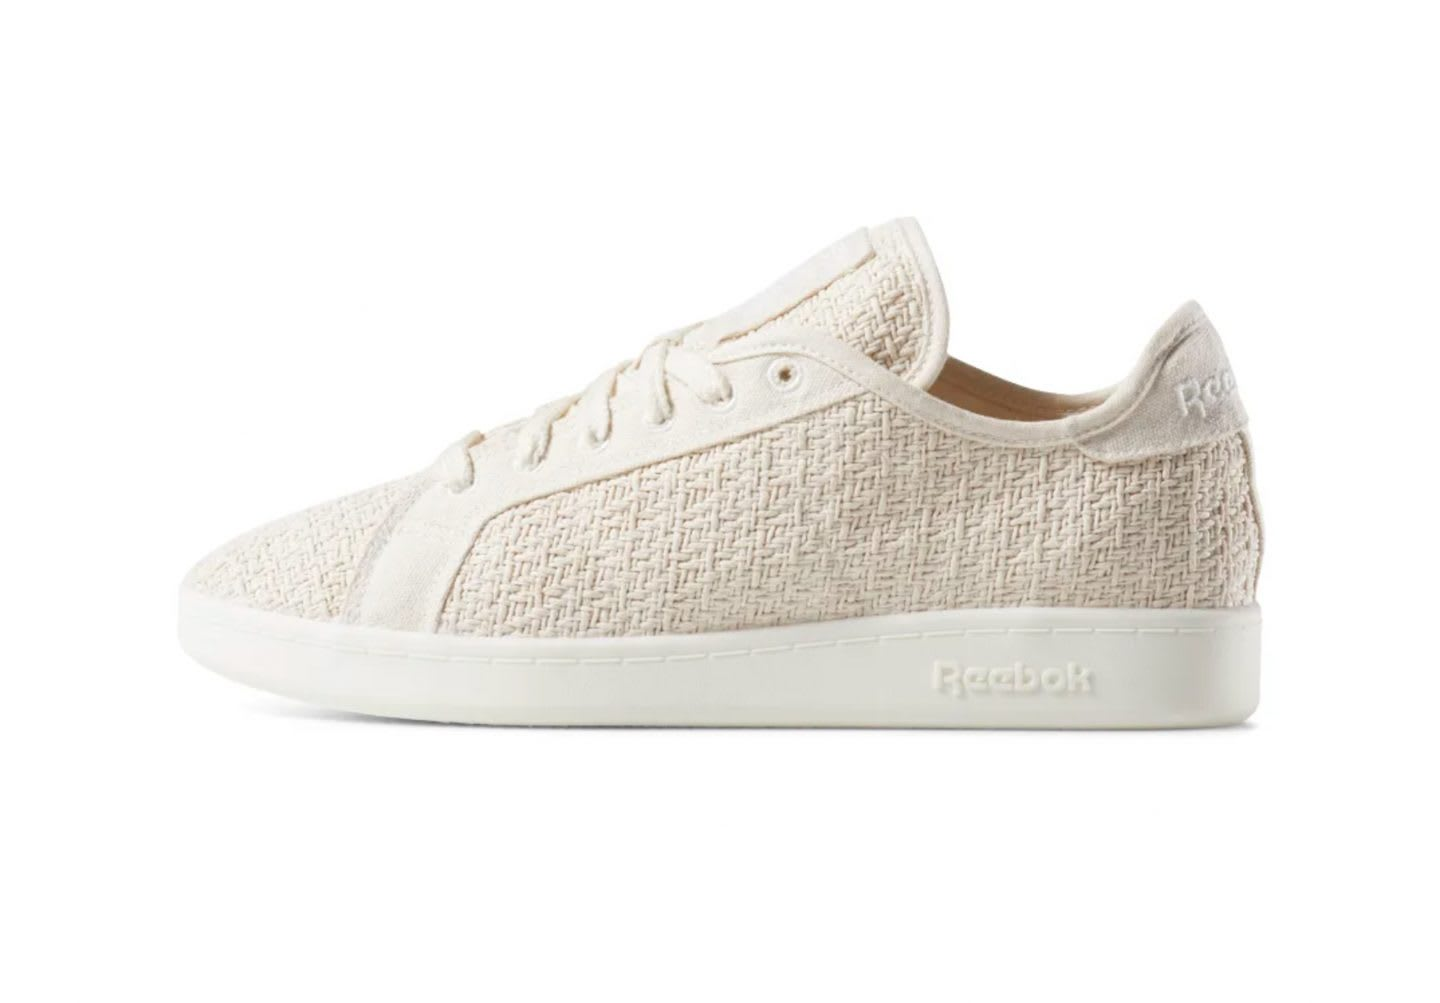 Reebok Cotton and Corn sneakers in white, sustainable, plant-based, Newport Classic, Reebok